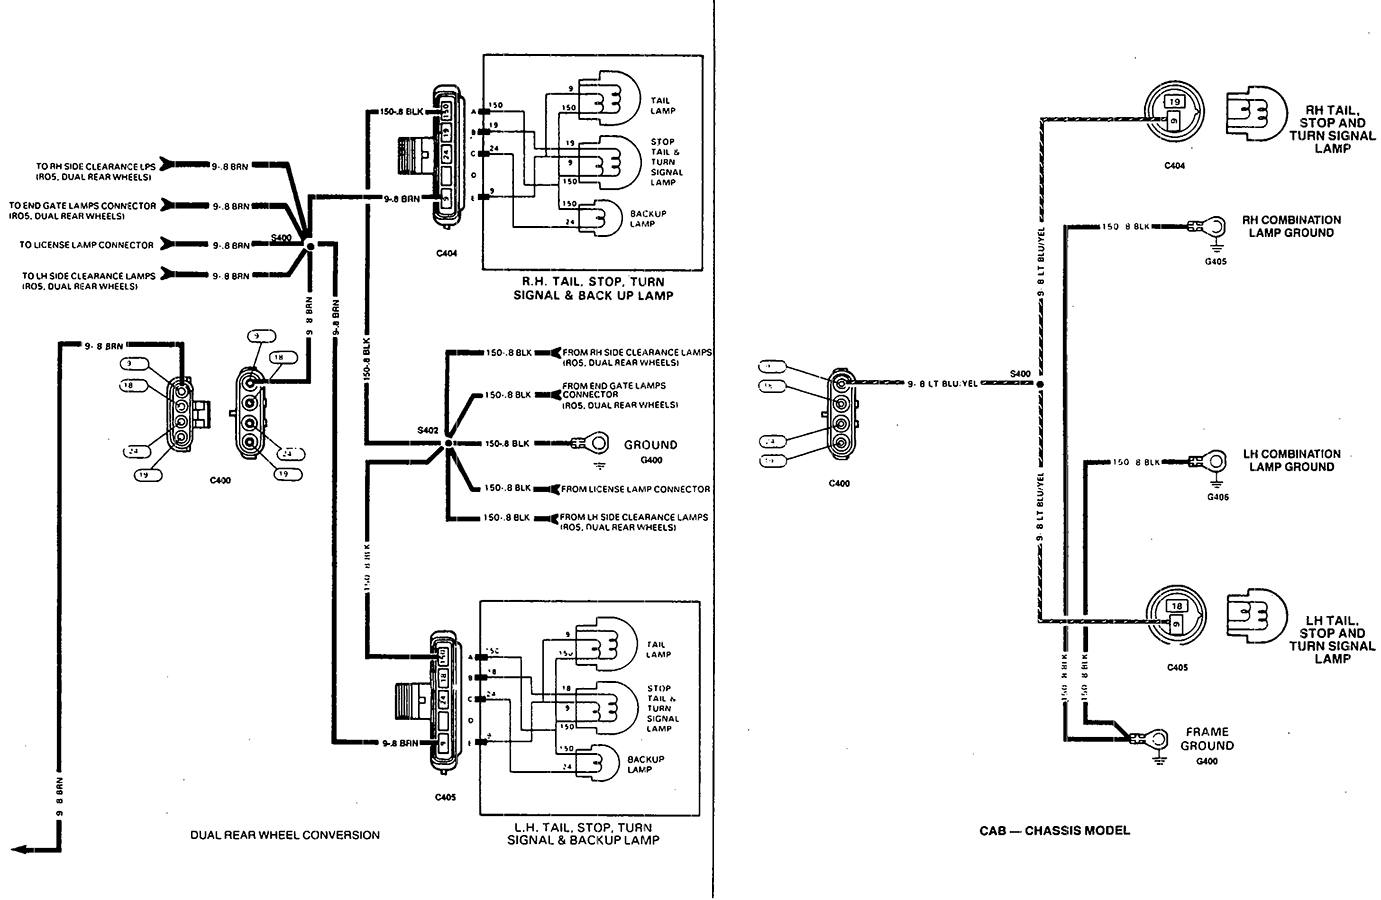 Chevy Wiring Diagram on chevy wiring diagrams automotive, 1994 chevy silverado radio wire diagram, chevy wiring schematics, chevy 1500 sub box, chevy 1500 motor, chevy 1500 radio diagram, chevy 1500 add a leaf, chevy 1500 body diagram, chevy schematic diagrams, 1993 chevy silverado 1500 fuse box diagram, chevy 1500 transmission diagram, chevy 1500 steering diagram, chevy trailblazer schematic, chevy 4.3 wiring-diagram, chevy venture wiring-diagram, chevy heater diagram, chevy 1500 front axle diagram, chevy 1500 brake switch, chevy tail light wiring colors, chevy 1500 manual,